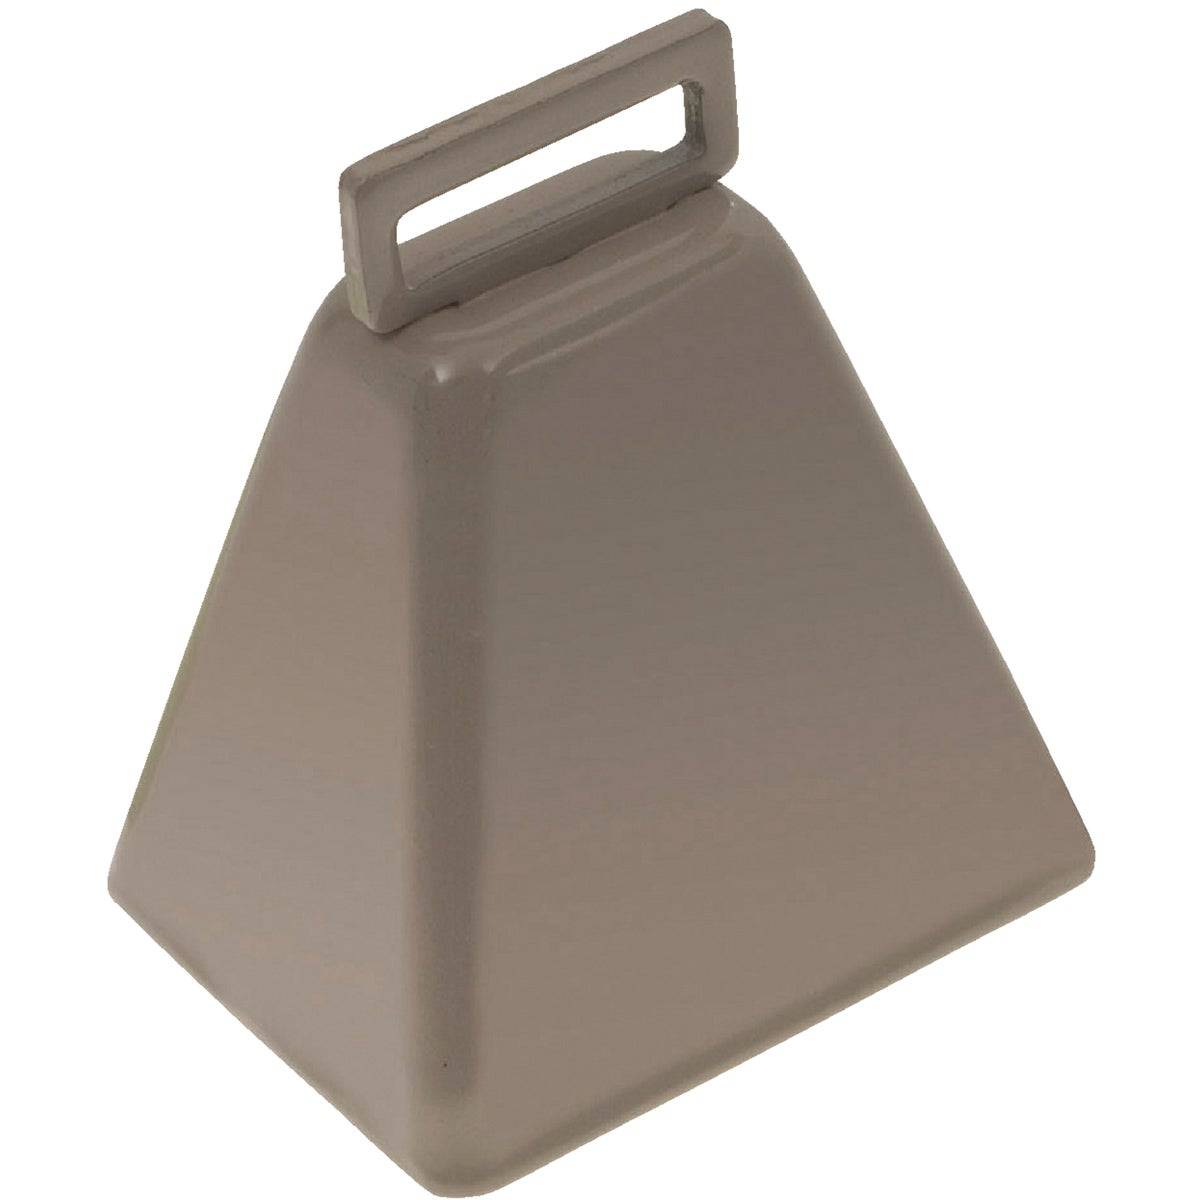 "2-13/16"" 10LD COW BELL"